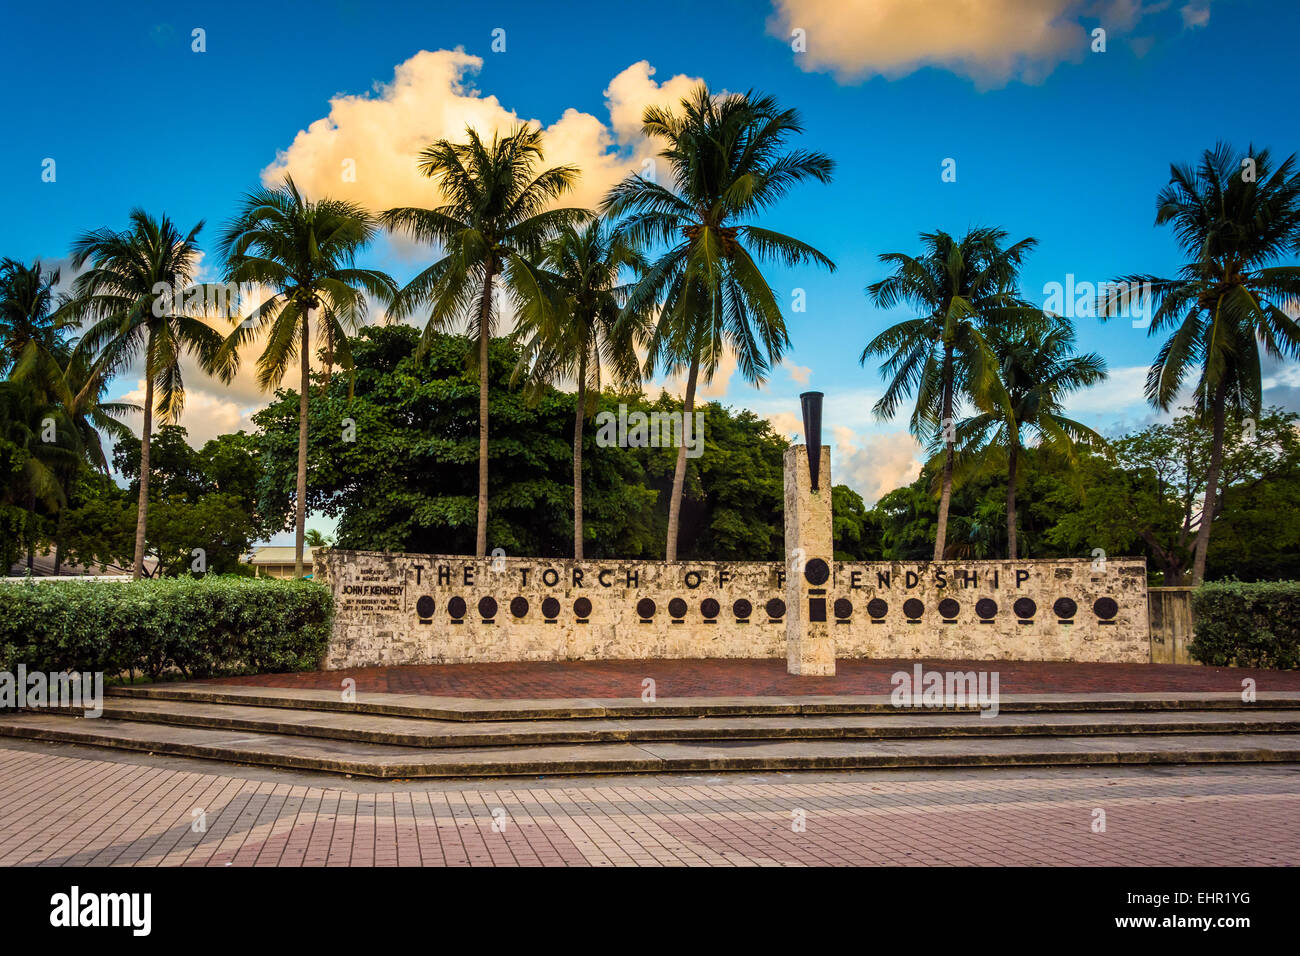 The Torch of Friendship in downtown Miami, Florida. - Stock Image